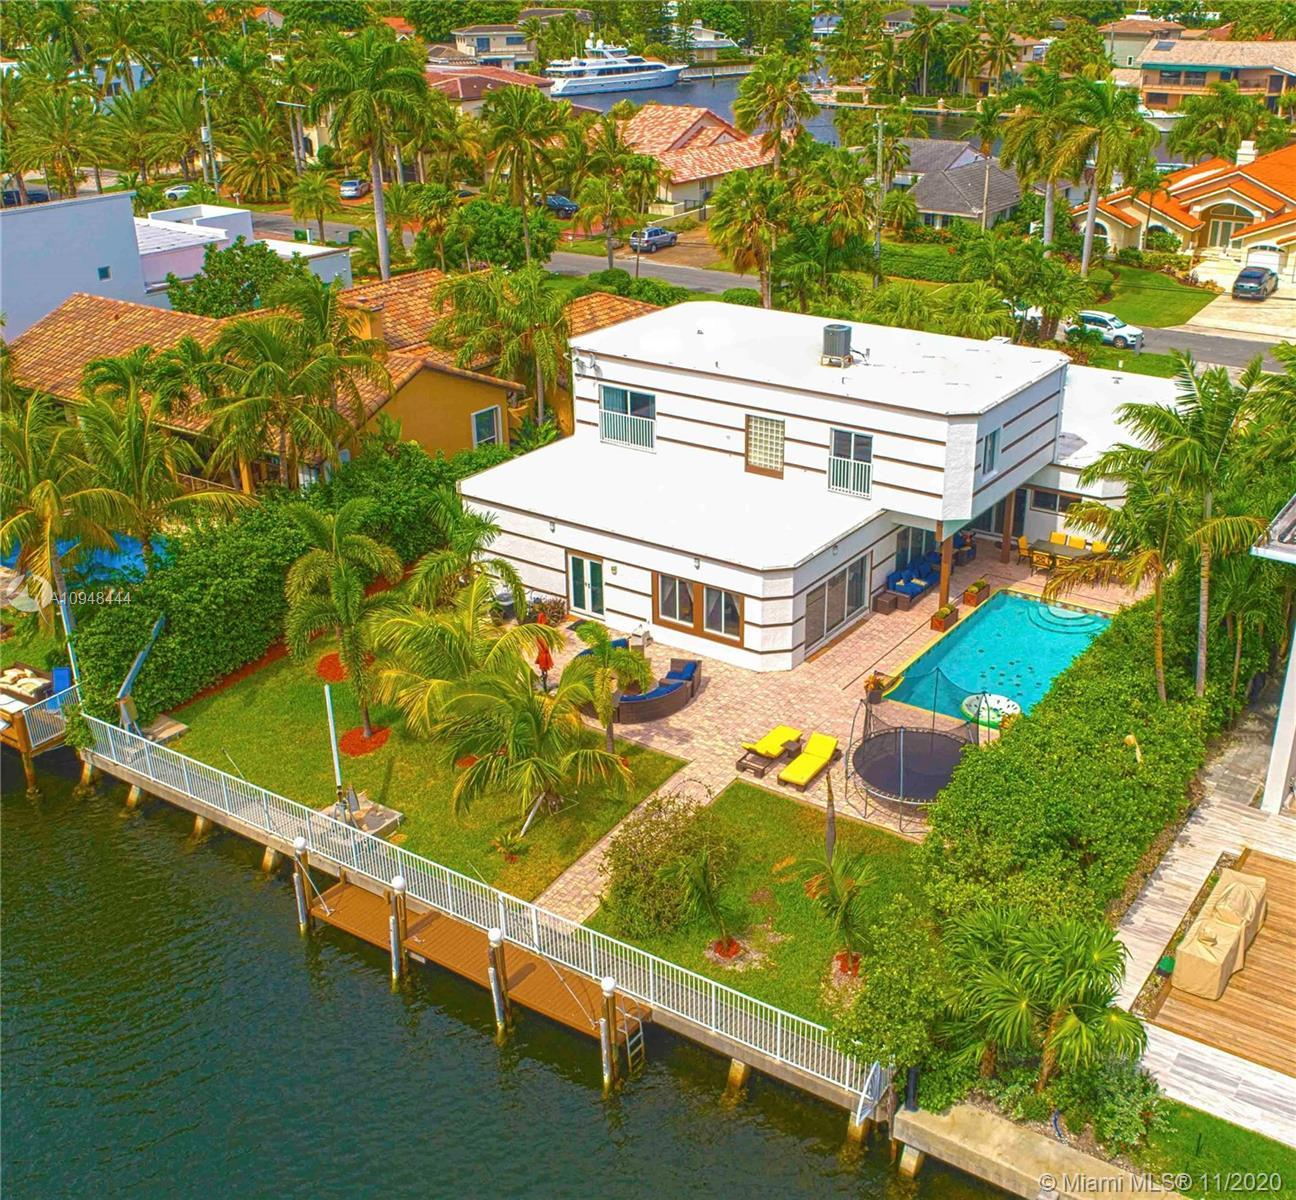 Spectacular waterfront luxury lifestyle home on a very private street in exclusive gated community o